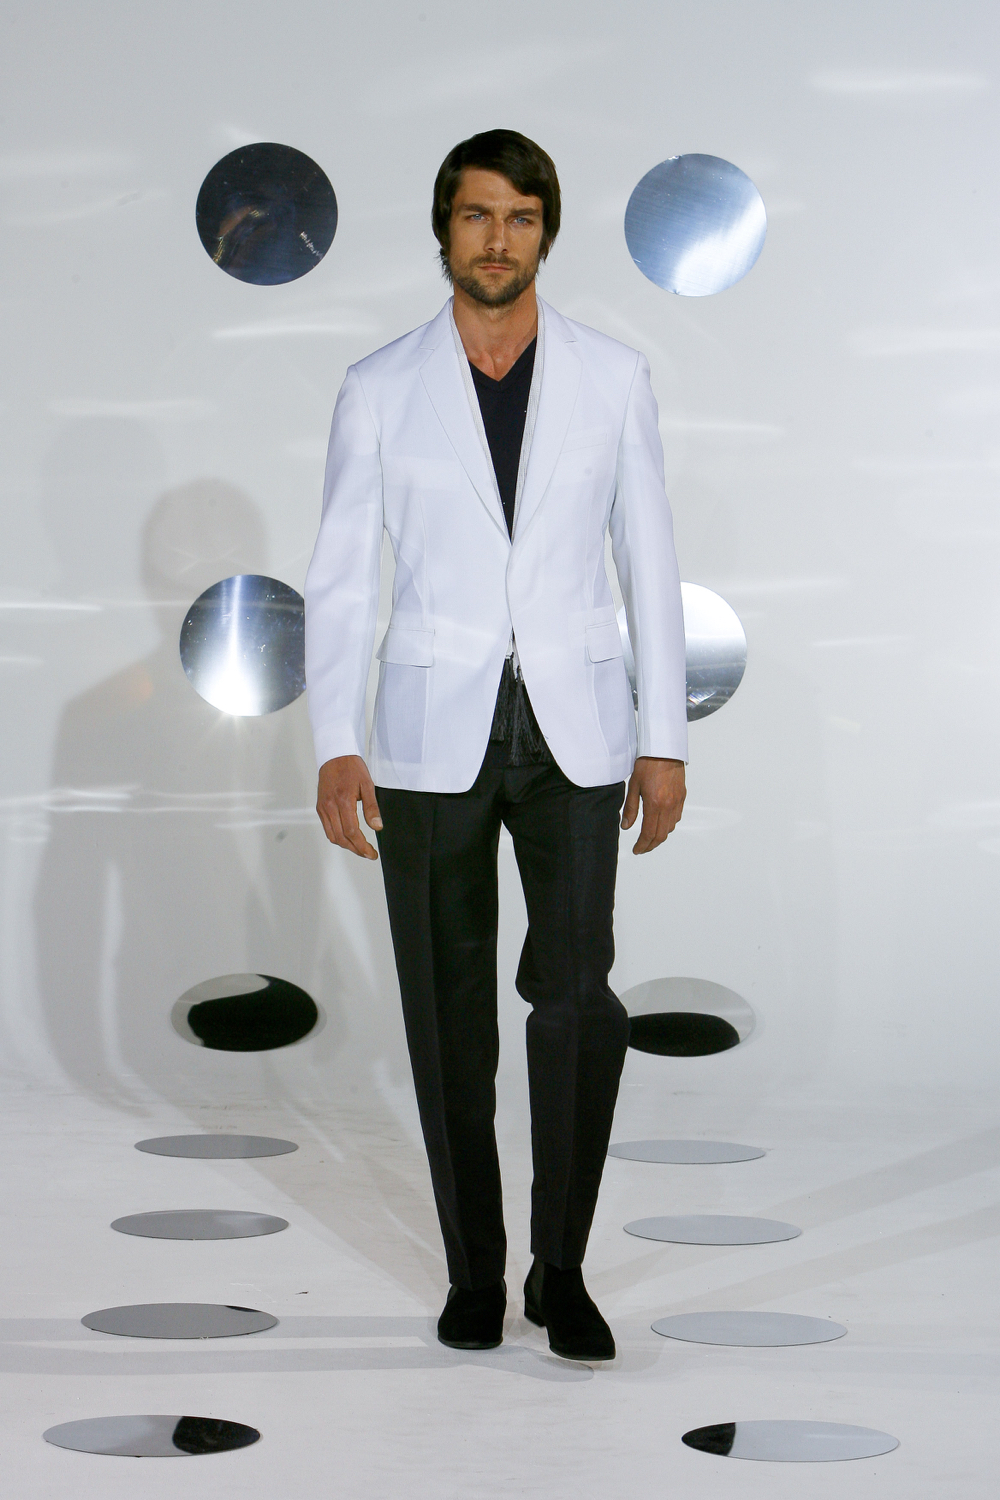 Paris fashion show, unstructured jacket.